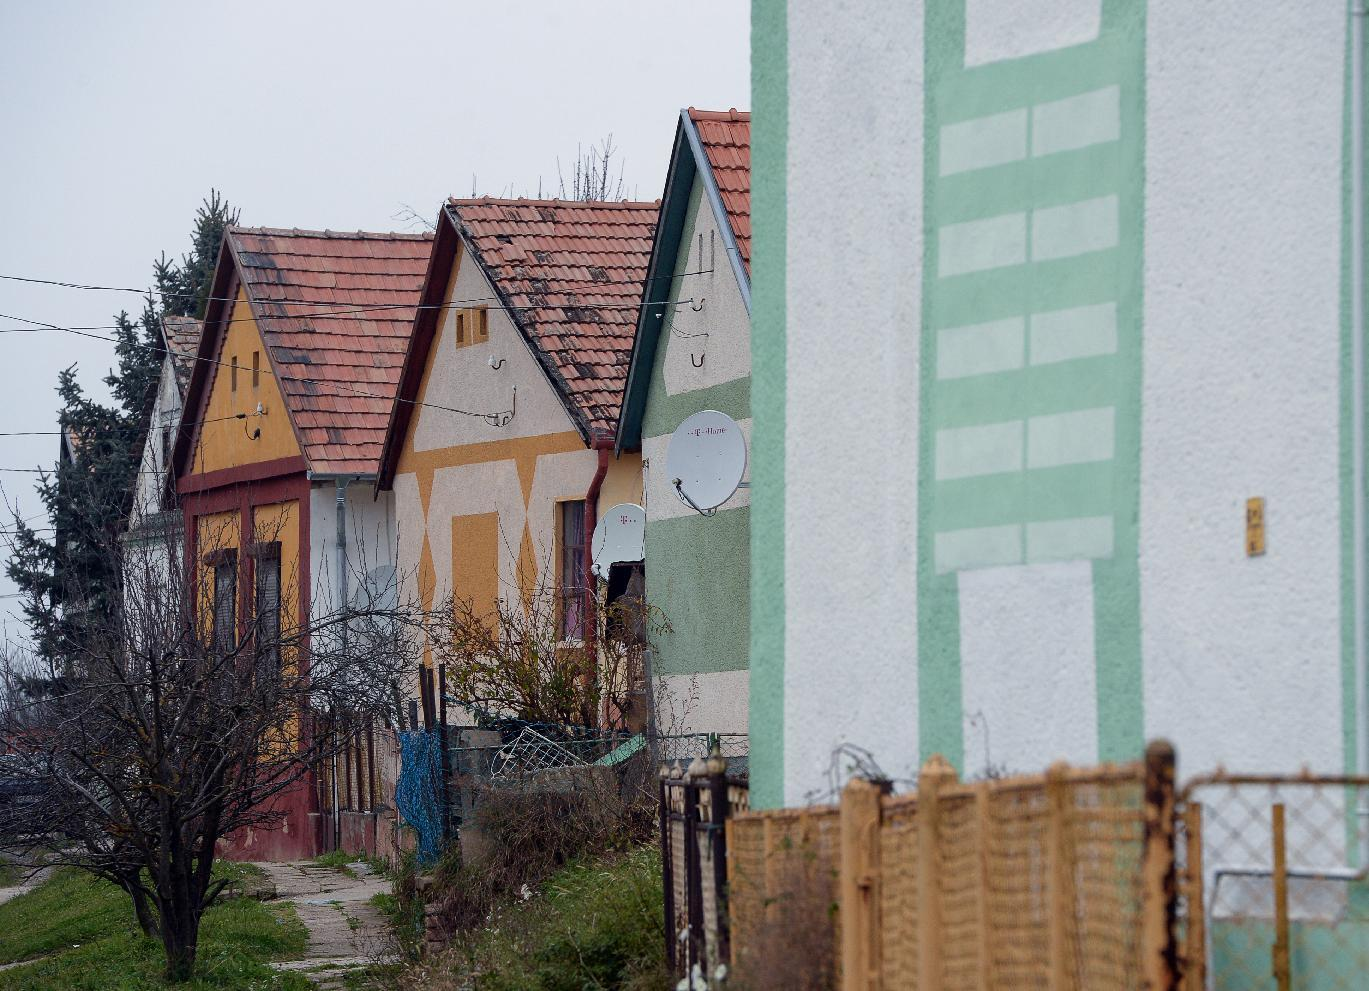 Subversive or submissive? Hungary divided over its Cube houses